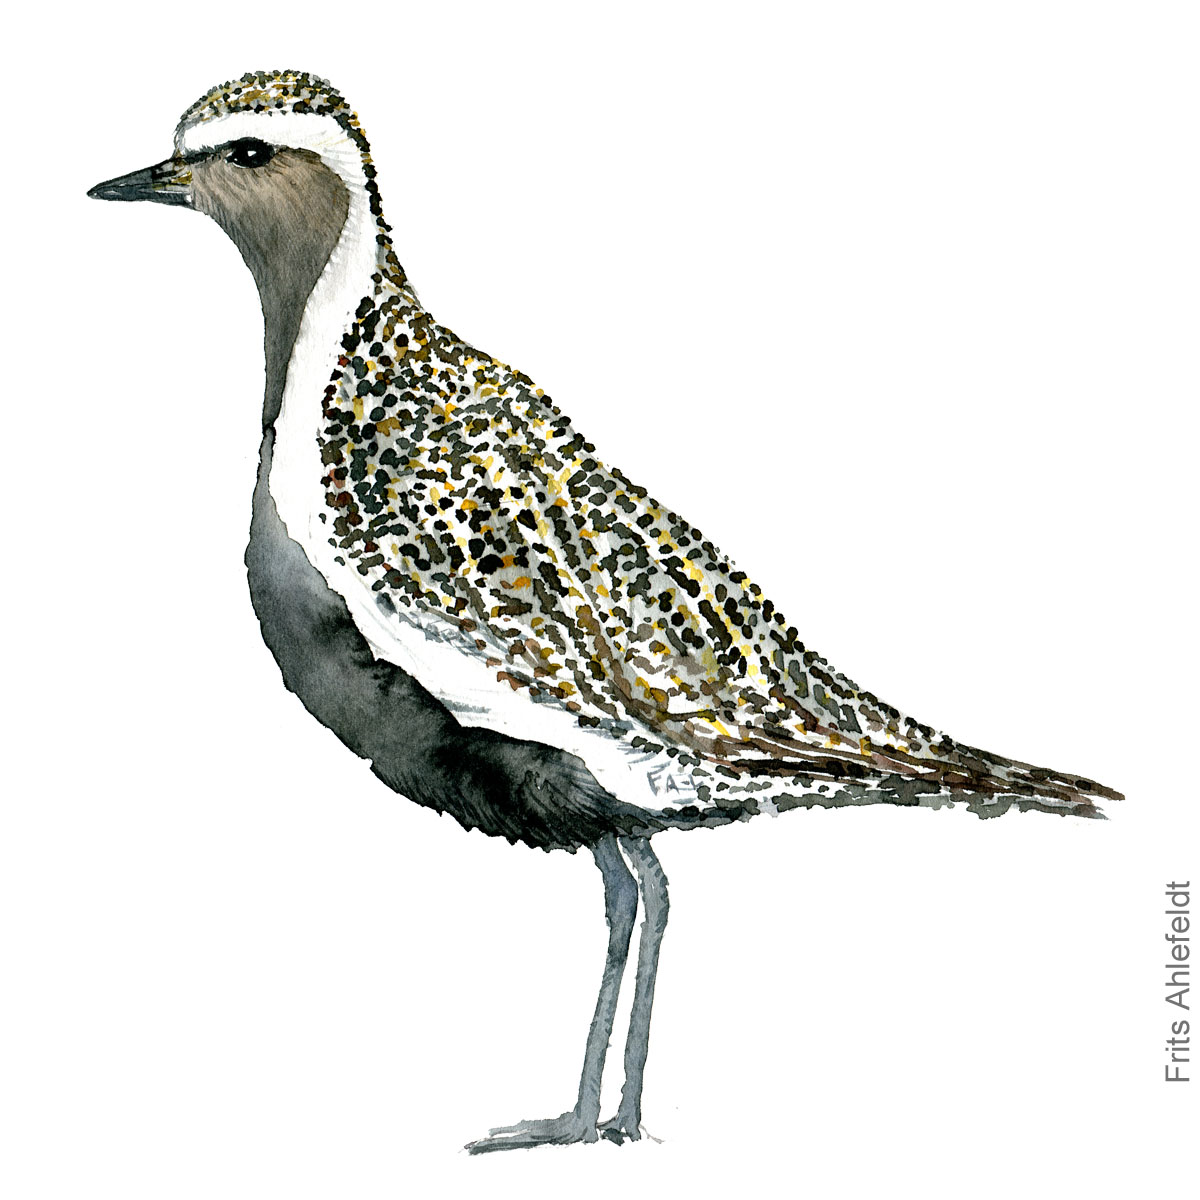 Hjejle - Golden plover bird watercolor painting. Artwork by Frits Ahlefeldt. Fugle akvarel